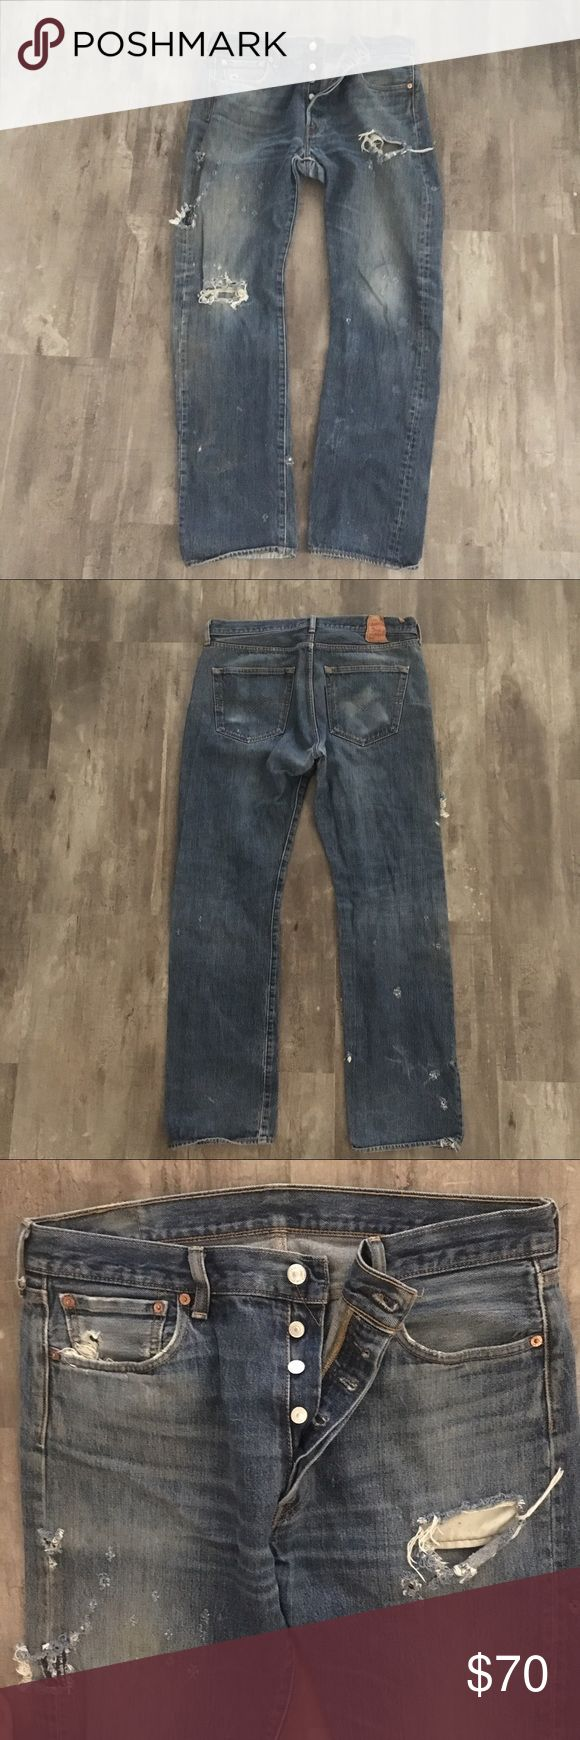 """Levi's 501s👖Button Fly Made c2002-Current/36 X 34 Exactly how you want your vintage Levi's to look, if anyone didn't know better, they'd think they were from the 80's or 90's.  Please know, per Heddel (best resource for Levi's authenticating), """"Any 501 produced after 2002 was most definitely made overseas"""". These bad boys are from Egypt and CANNOT be more than 15 years old. They are hella-mazing!  See Measurements ladies as older Levi's run SMALL. waist measures 17.75"""", 11.75"""" rise, 32""""…"""